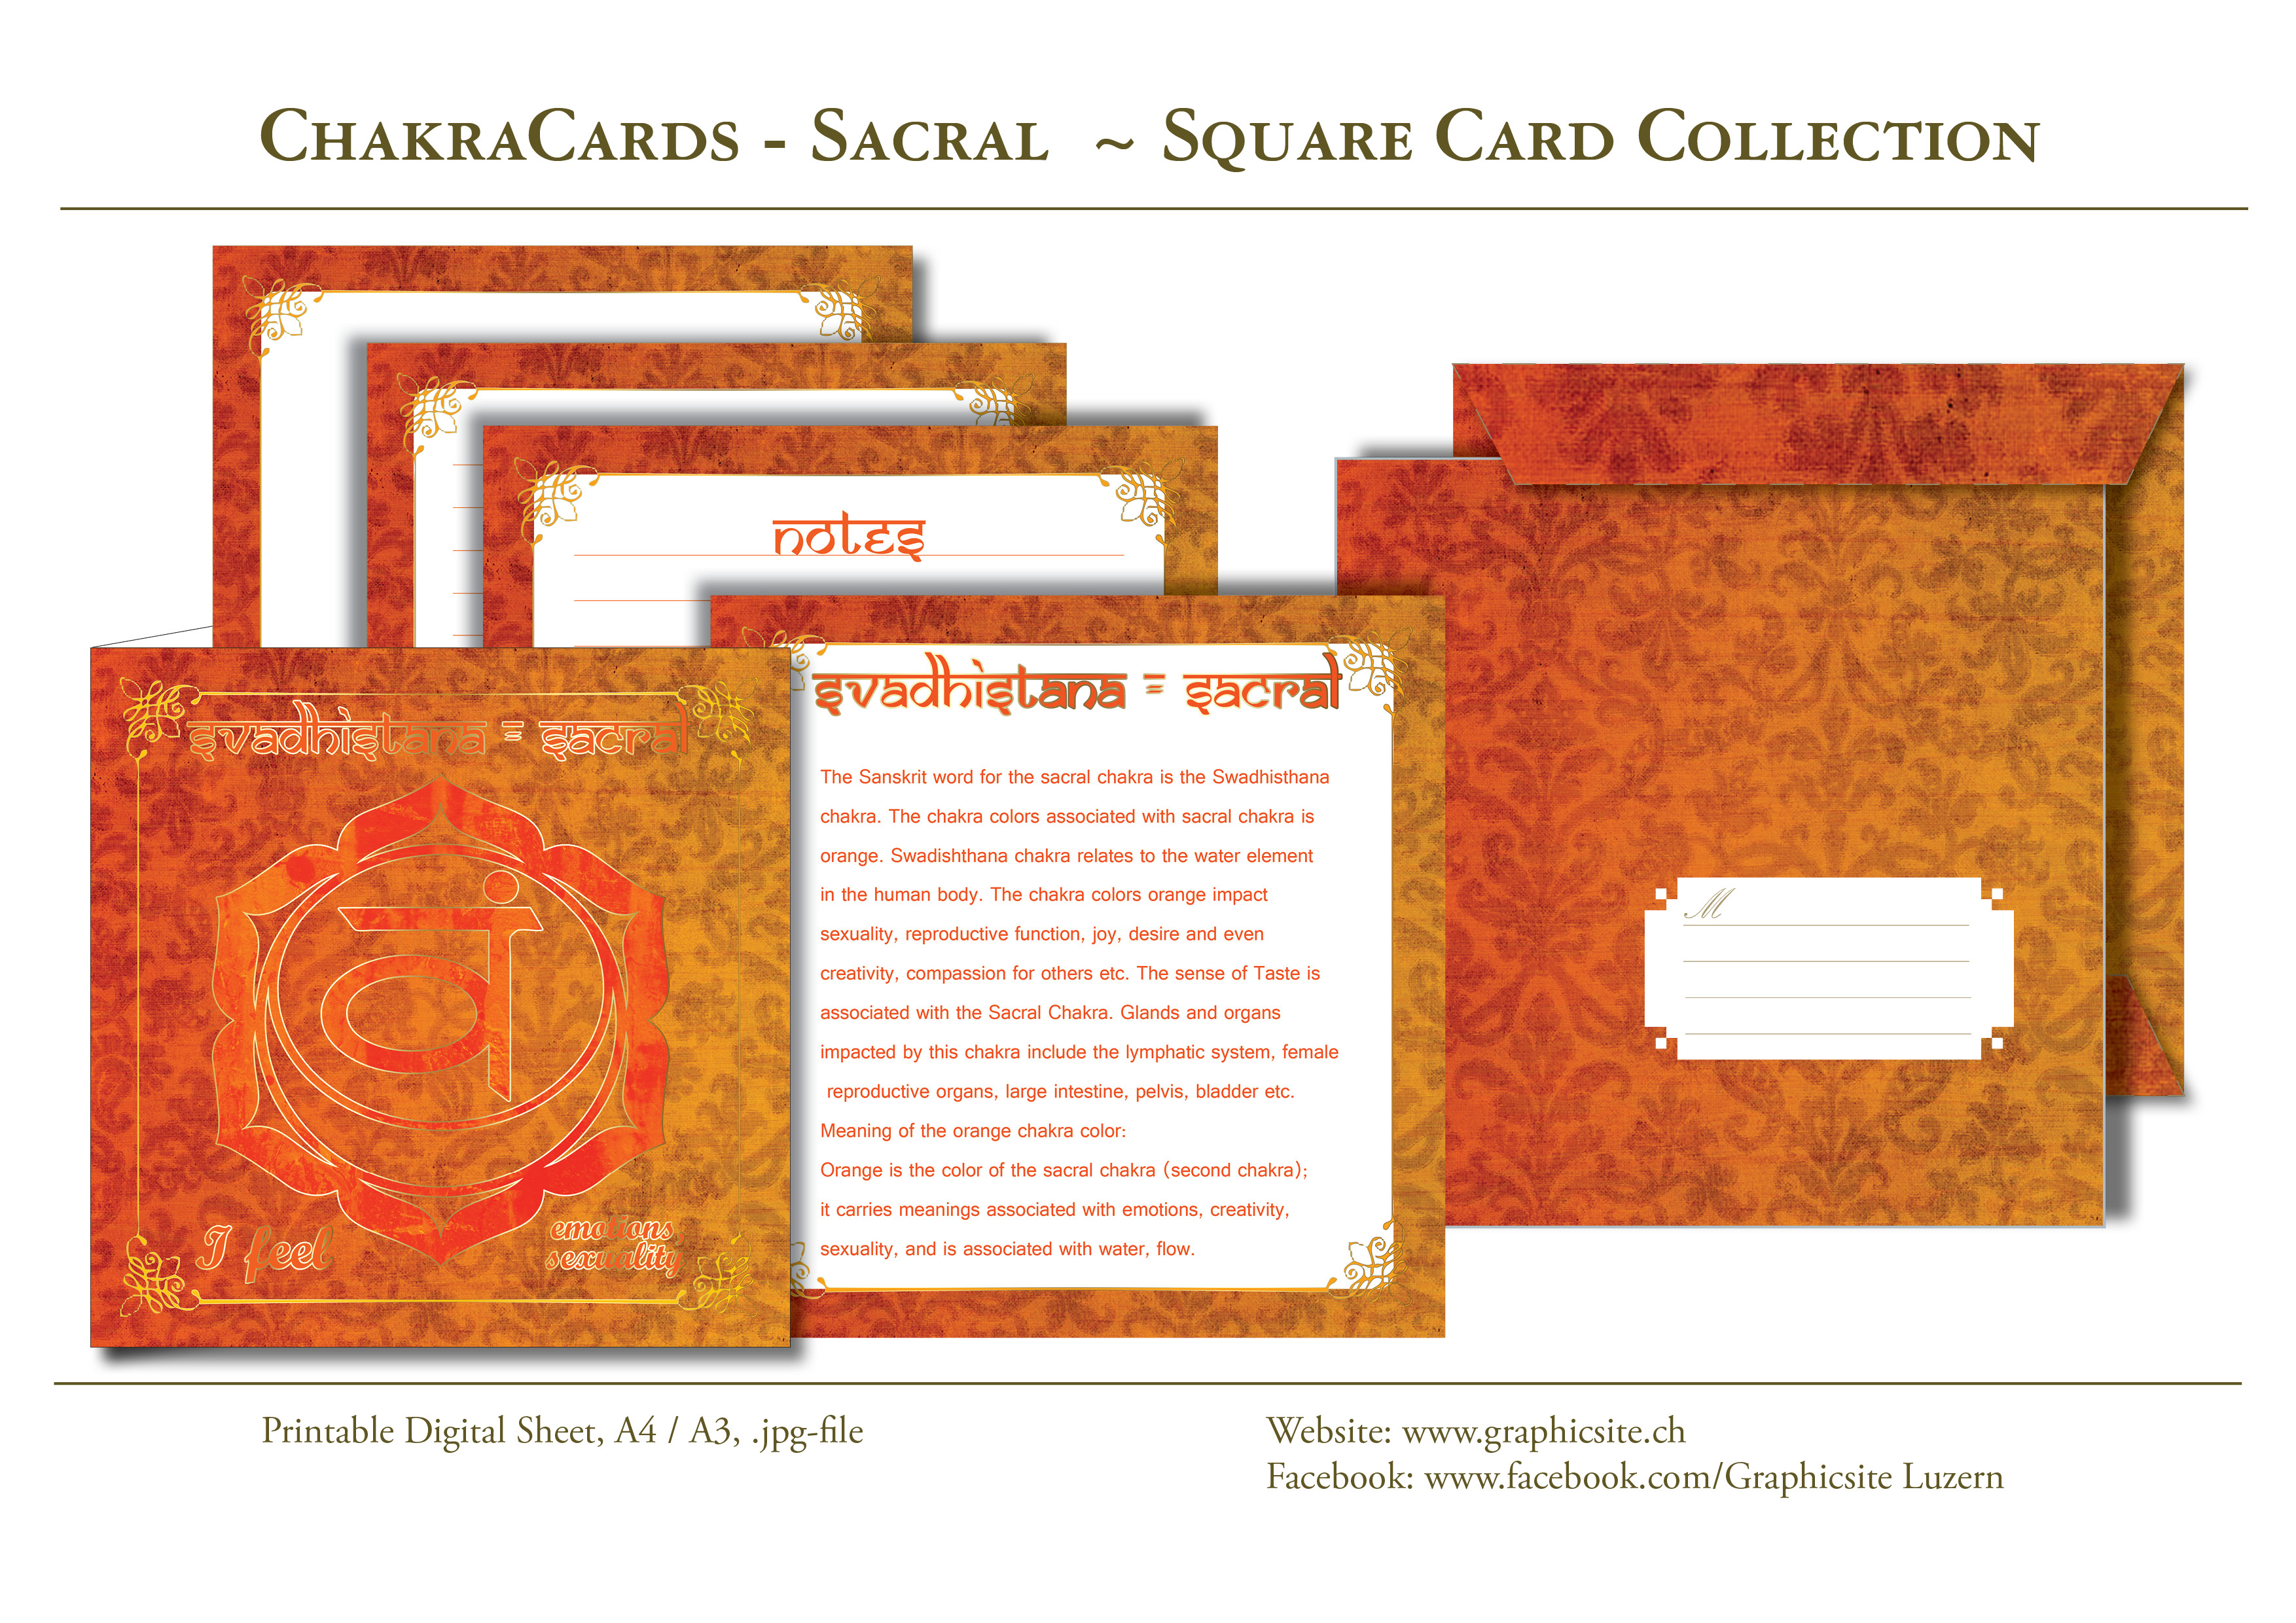 Printable Digital Sheets - Square Card Collections - Chakra Cards, Swadhisthana, Sacral,